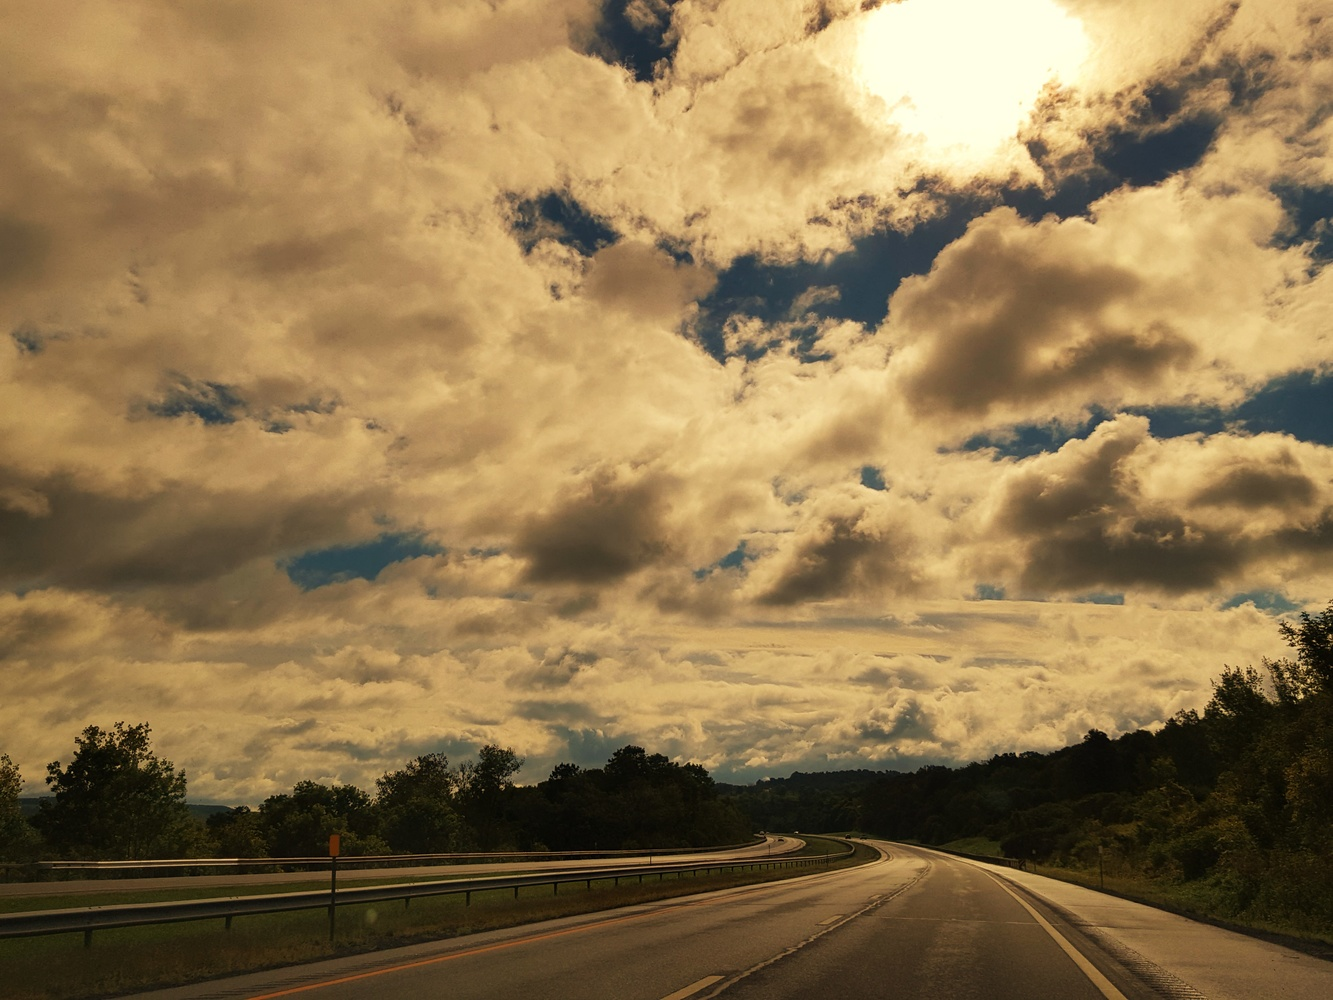 Highway to the Clouds by Michael Warner